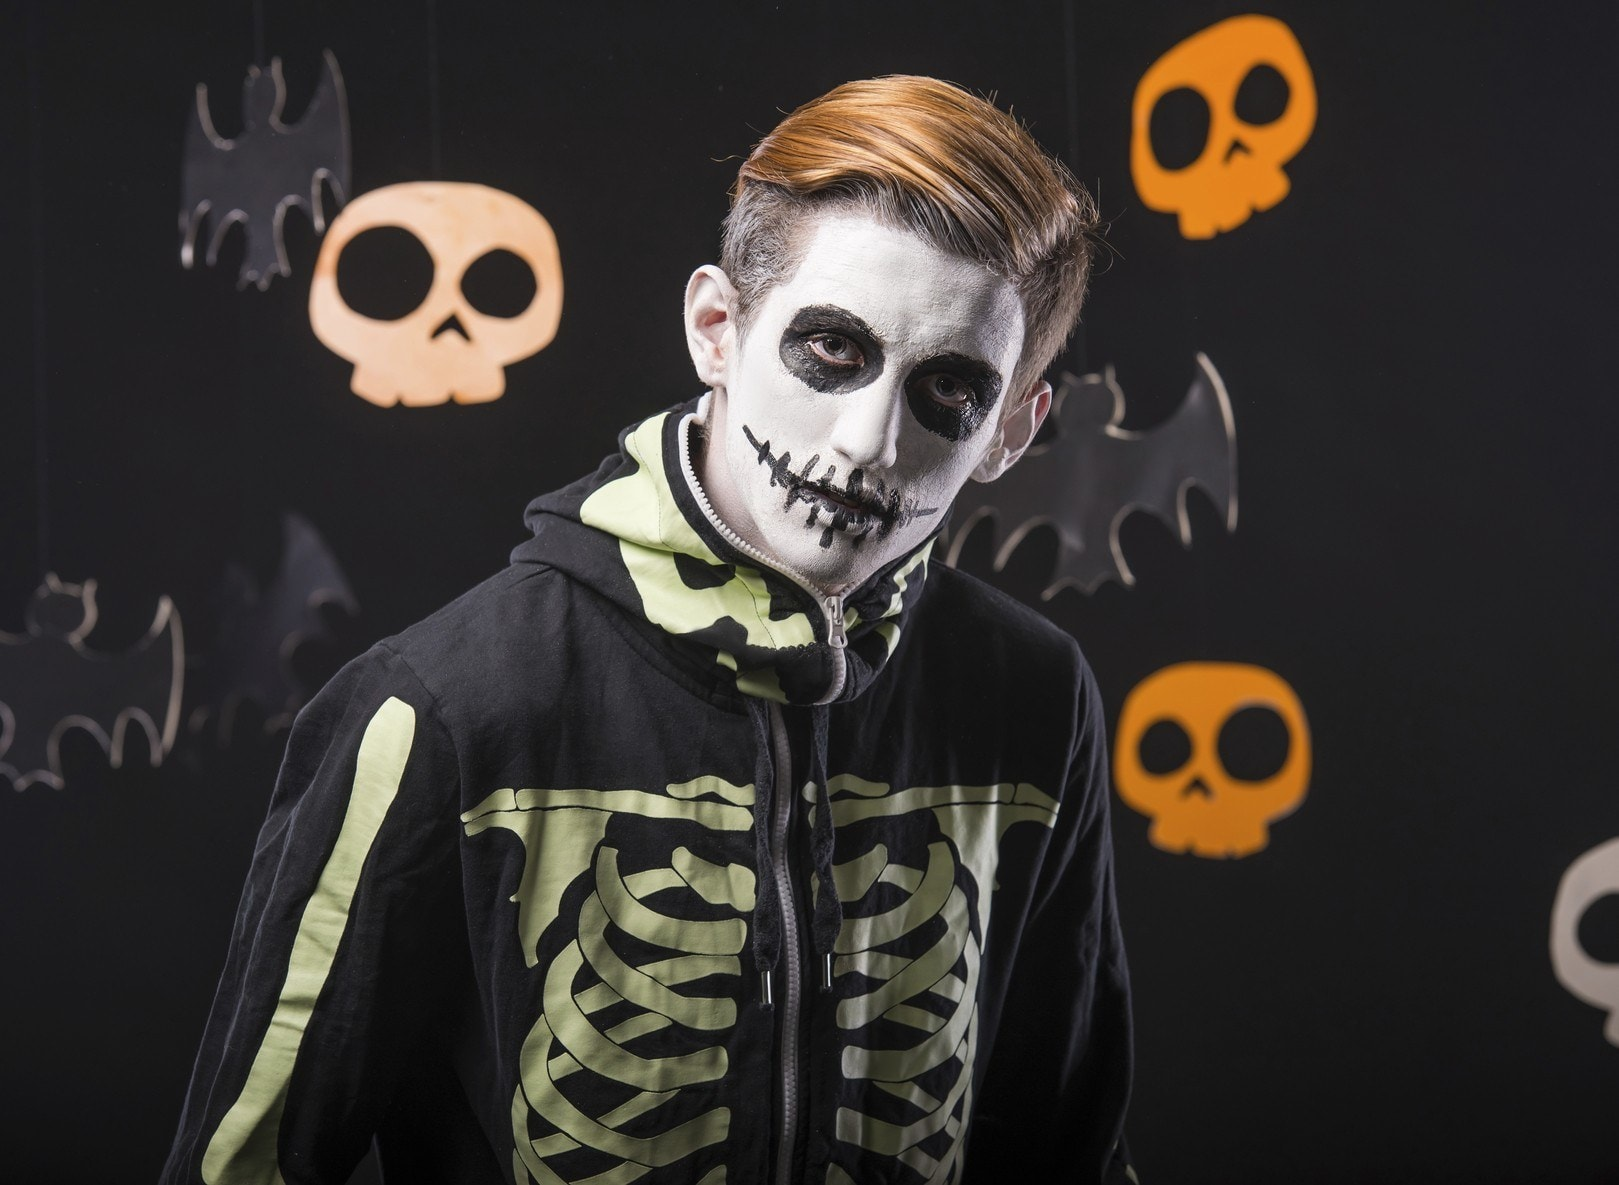 young boy wearing zombie halloween costume with combover hairstyle